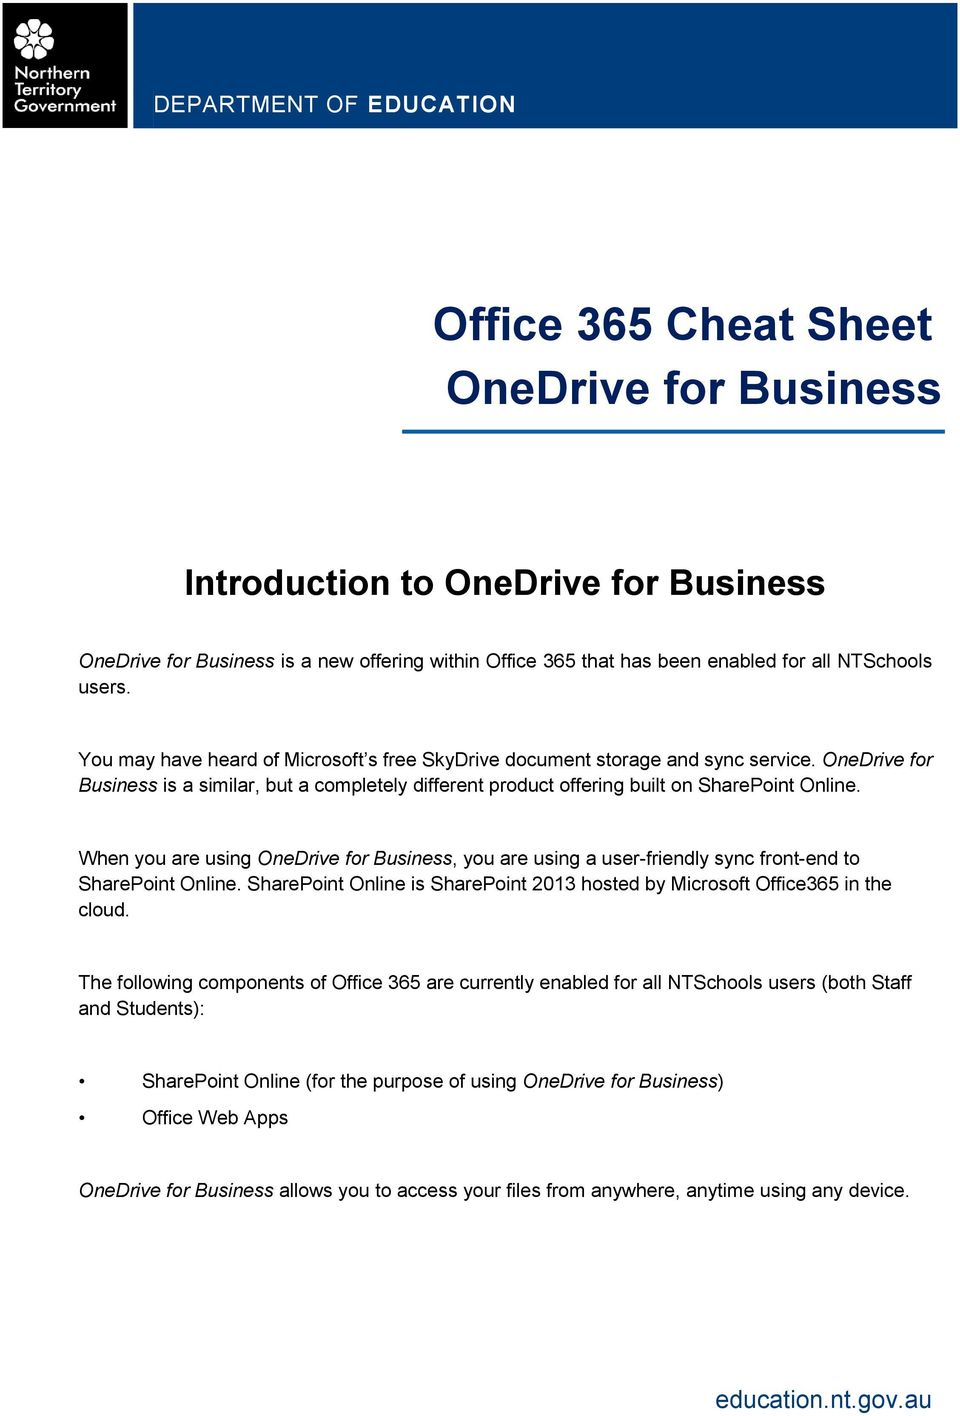 Office 365 Cheat Sheet OneDrive for Business - PDF